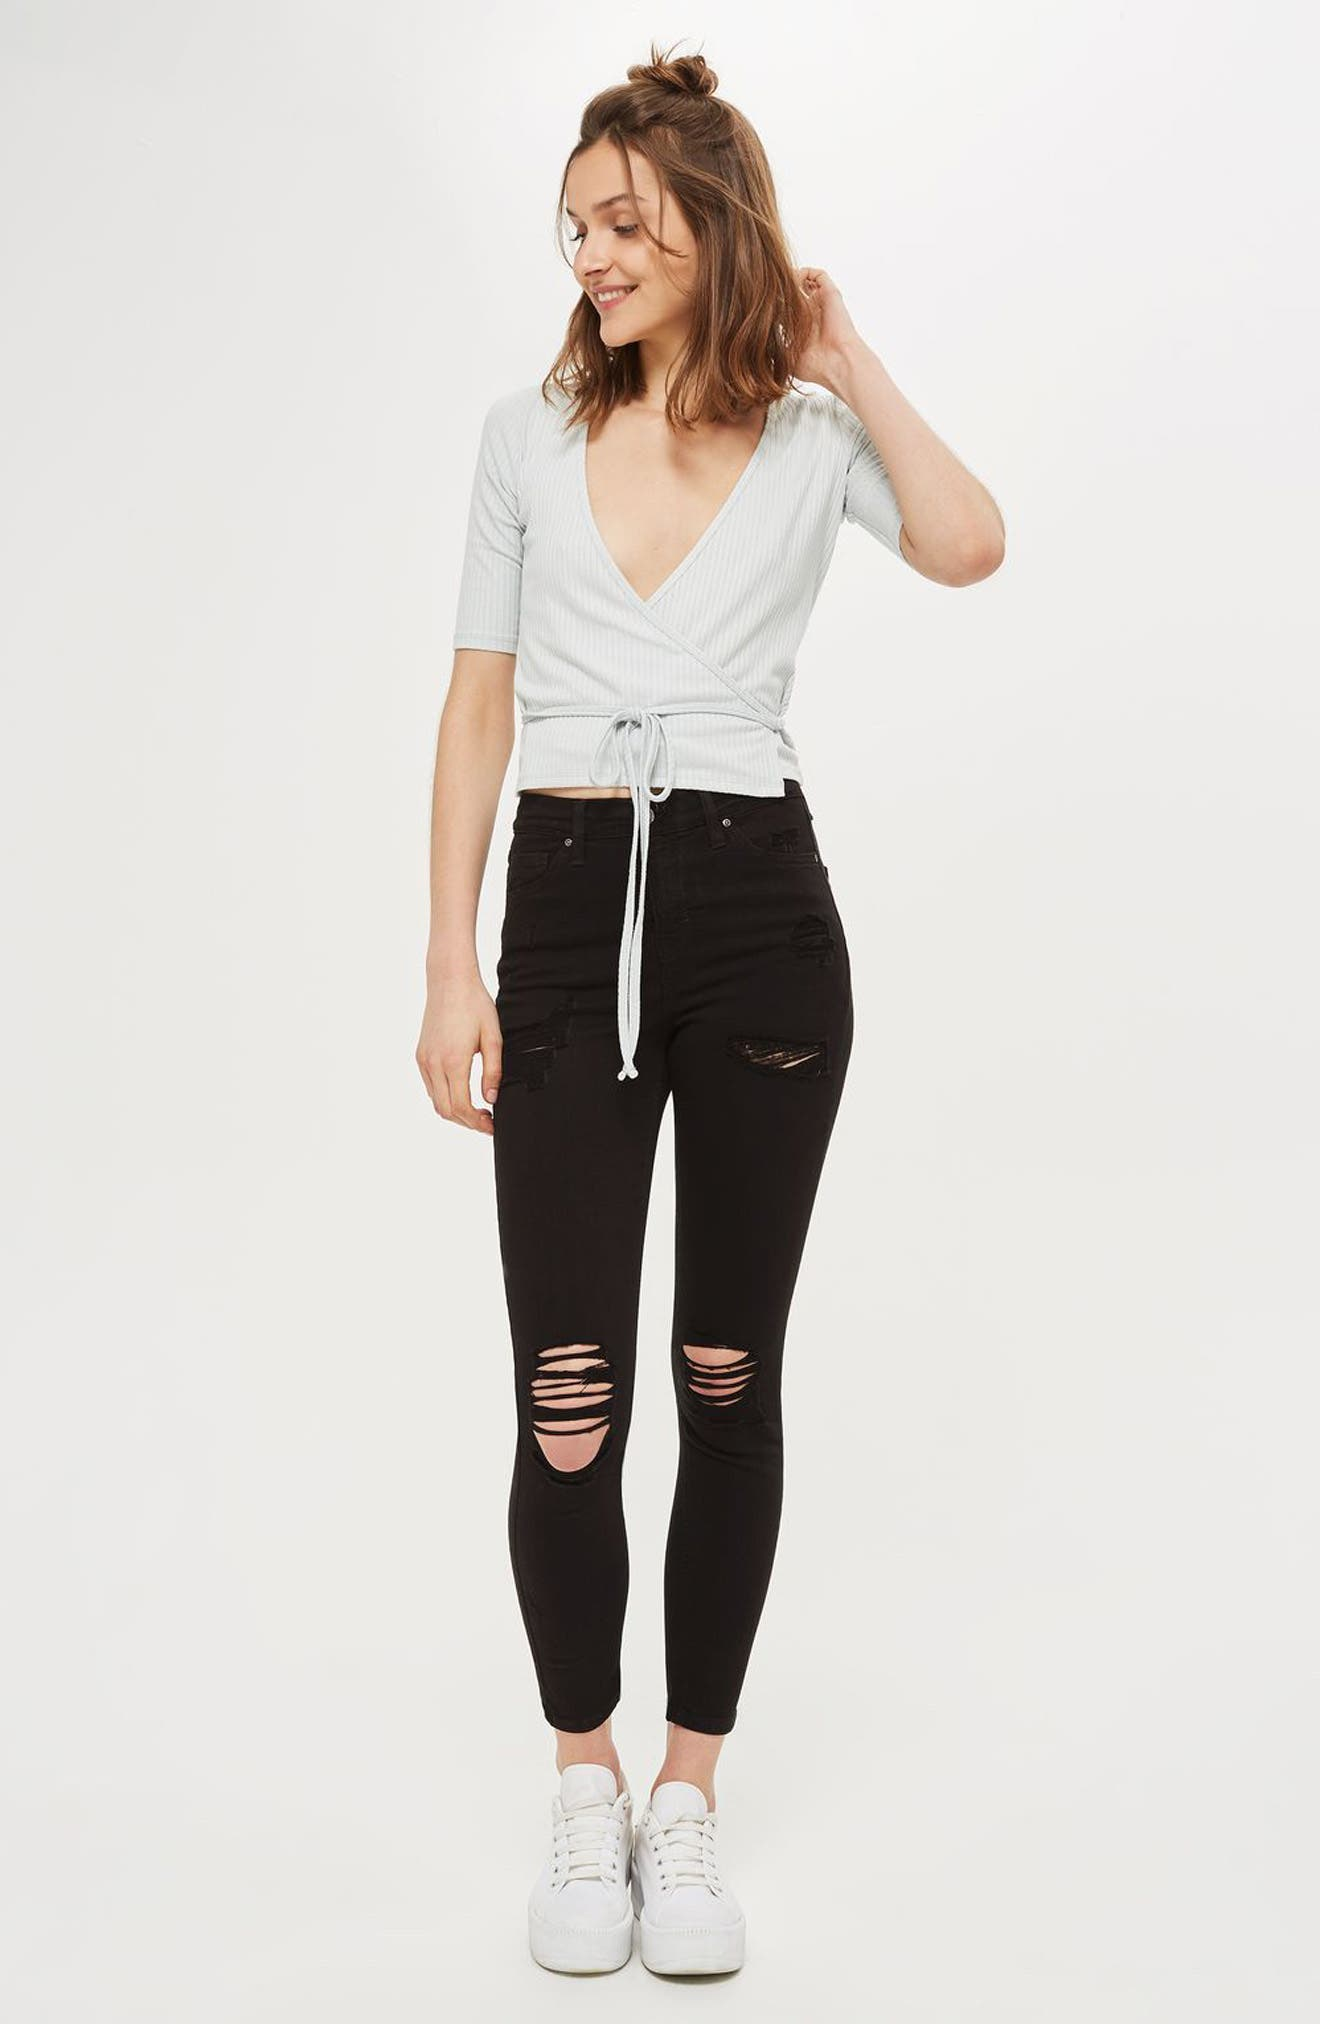 TOPSHOP,                             Ripped High Waist Ankle Skinny Jeans,                             Alternate thumbnail 12, color,                             001